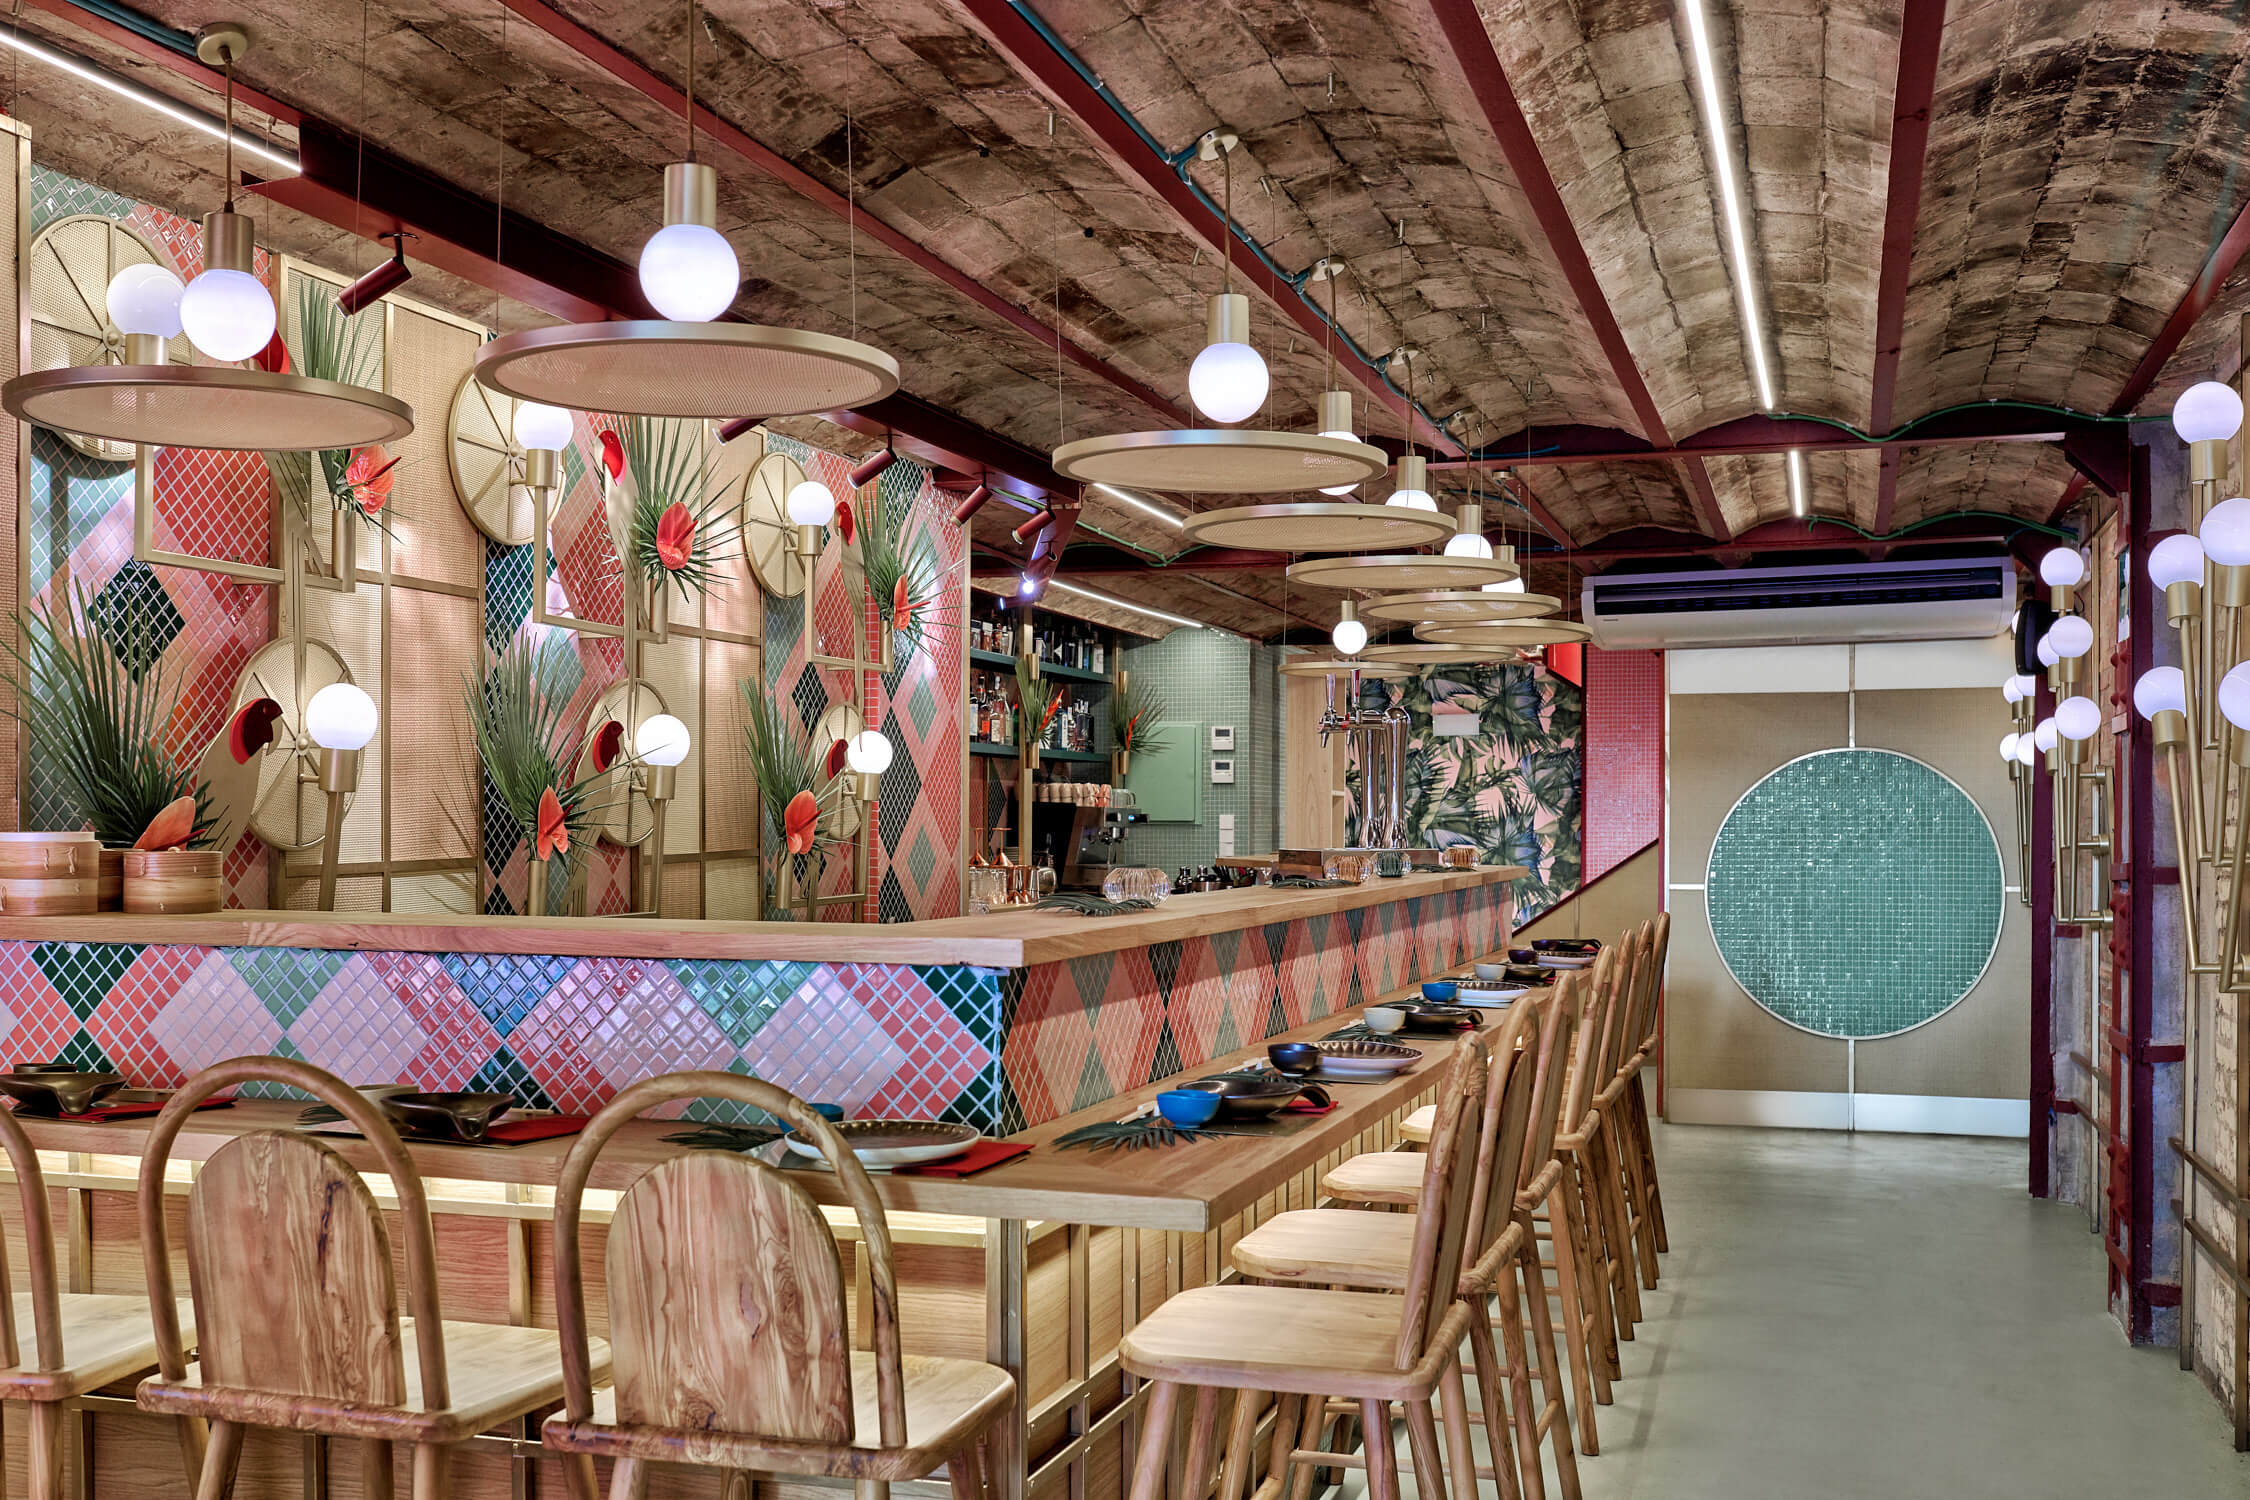 Masquespacio design for tropical sushi restaurant Kaikaya, Valencia